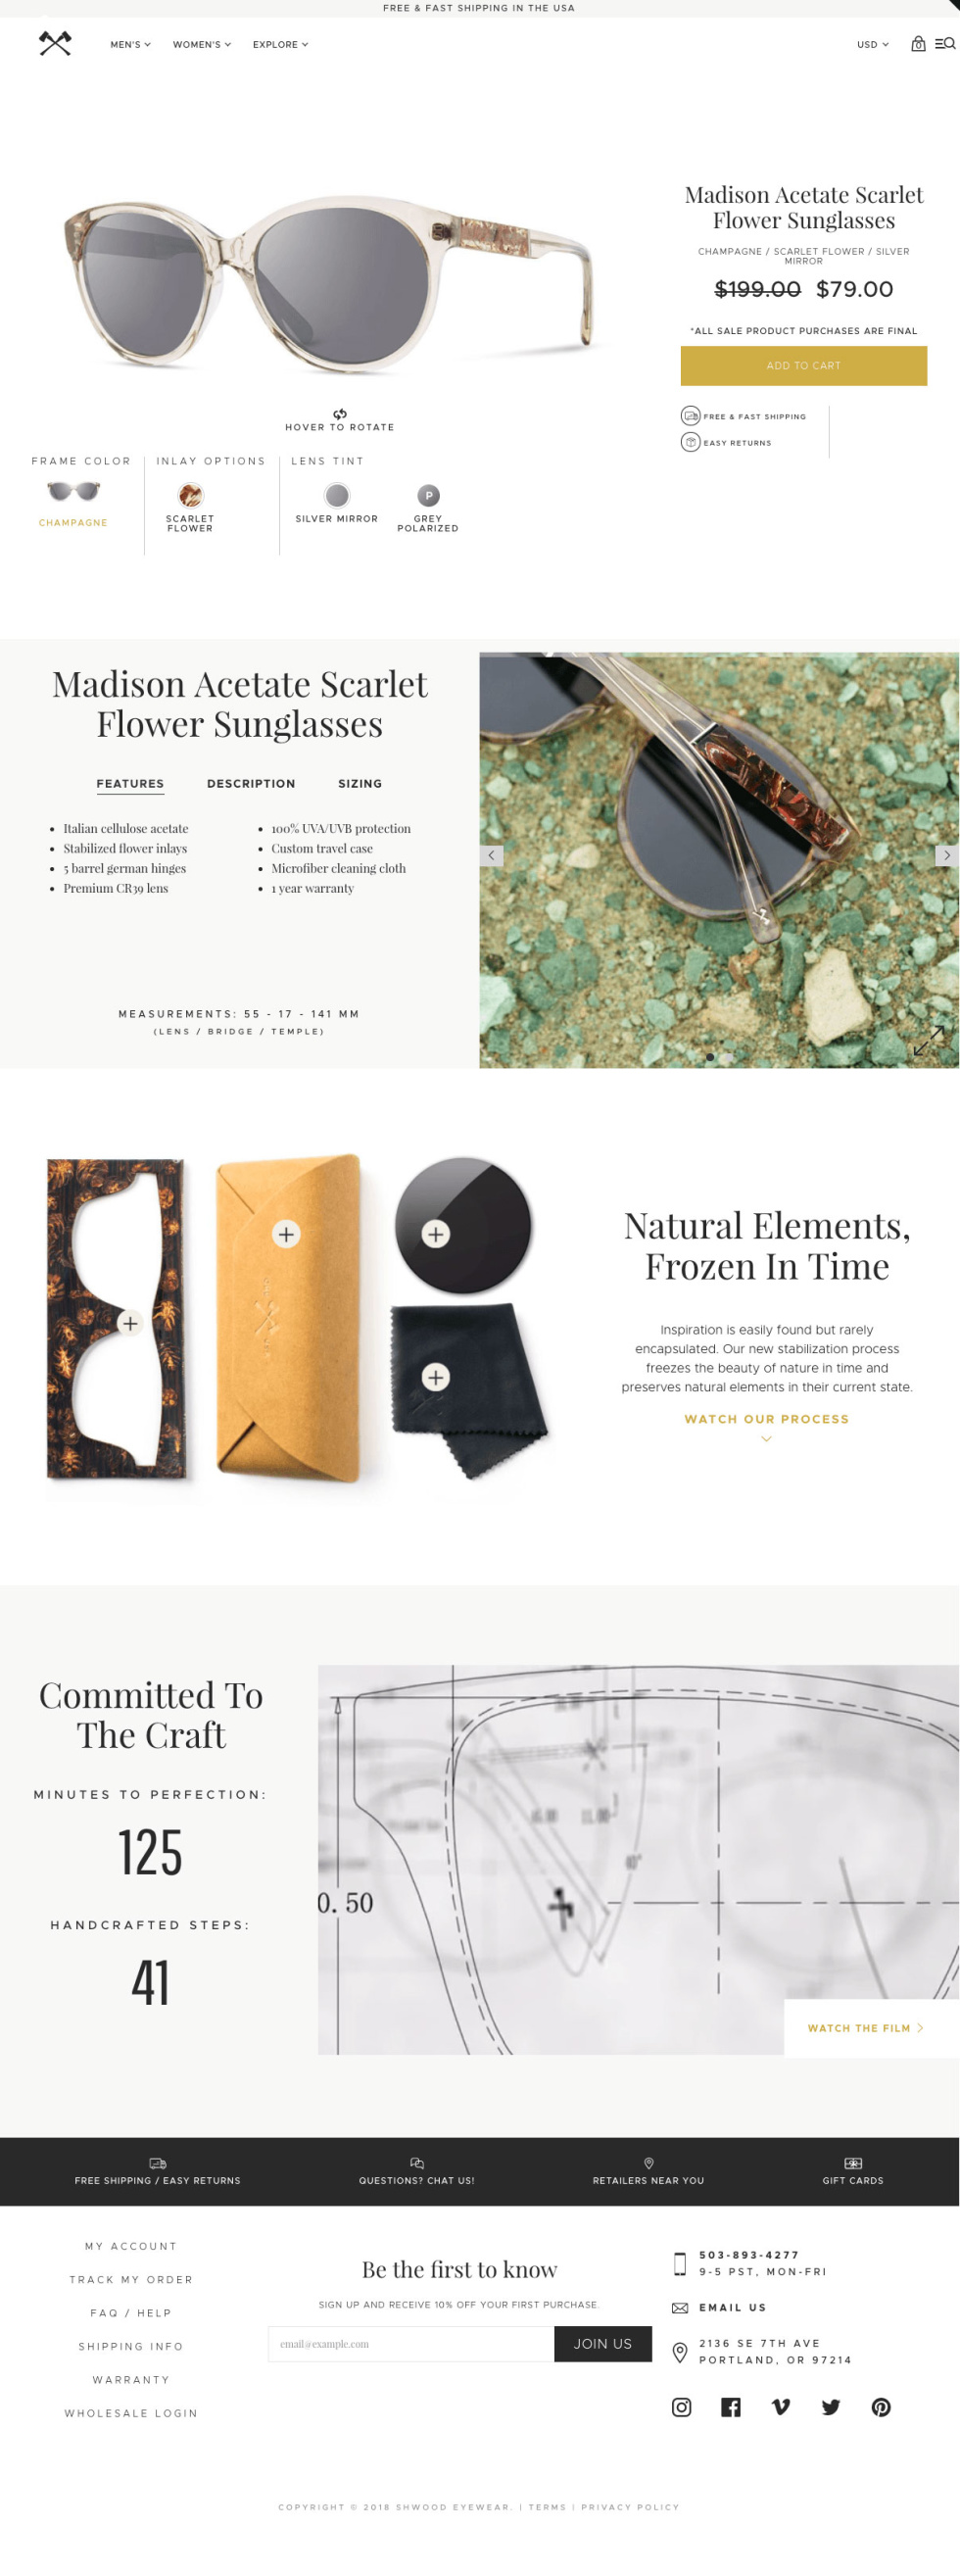 Template layout for eyewear company. White background with several images with and without borders of various eyewear. Navigation bar included and contact information at the bottom of the page in black text.